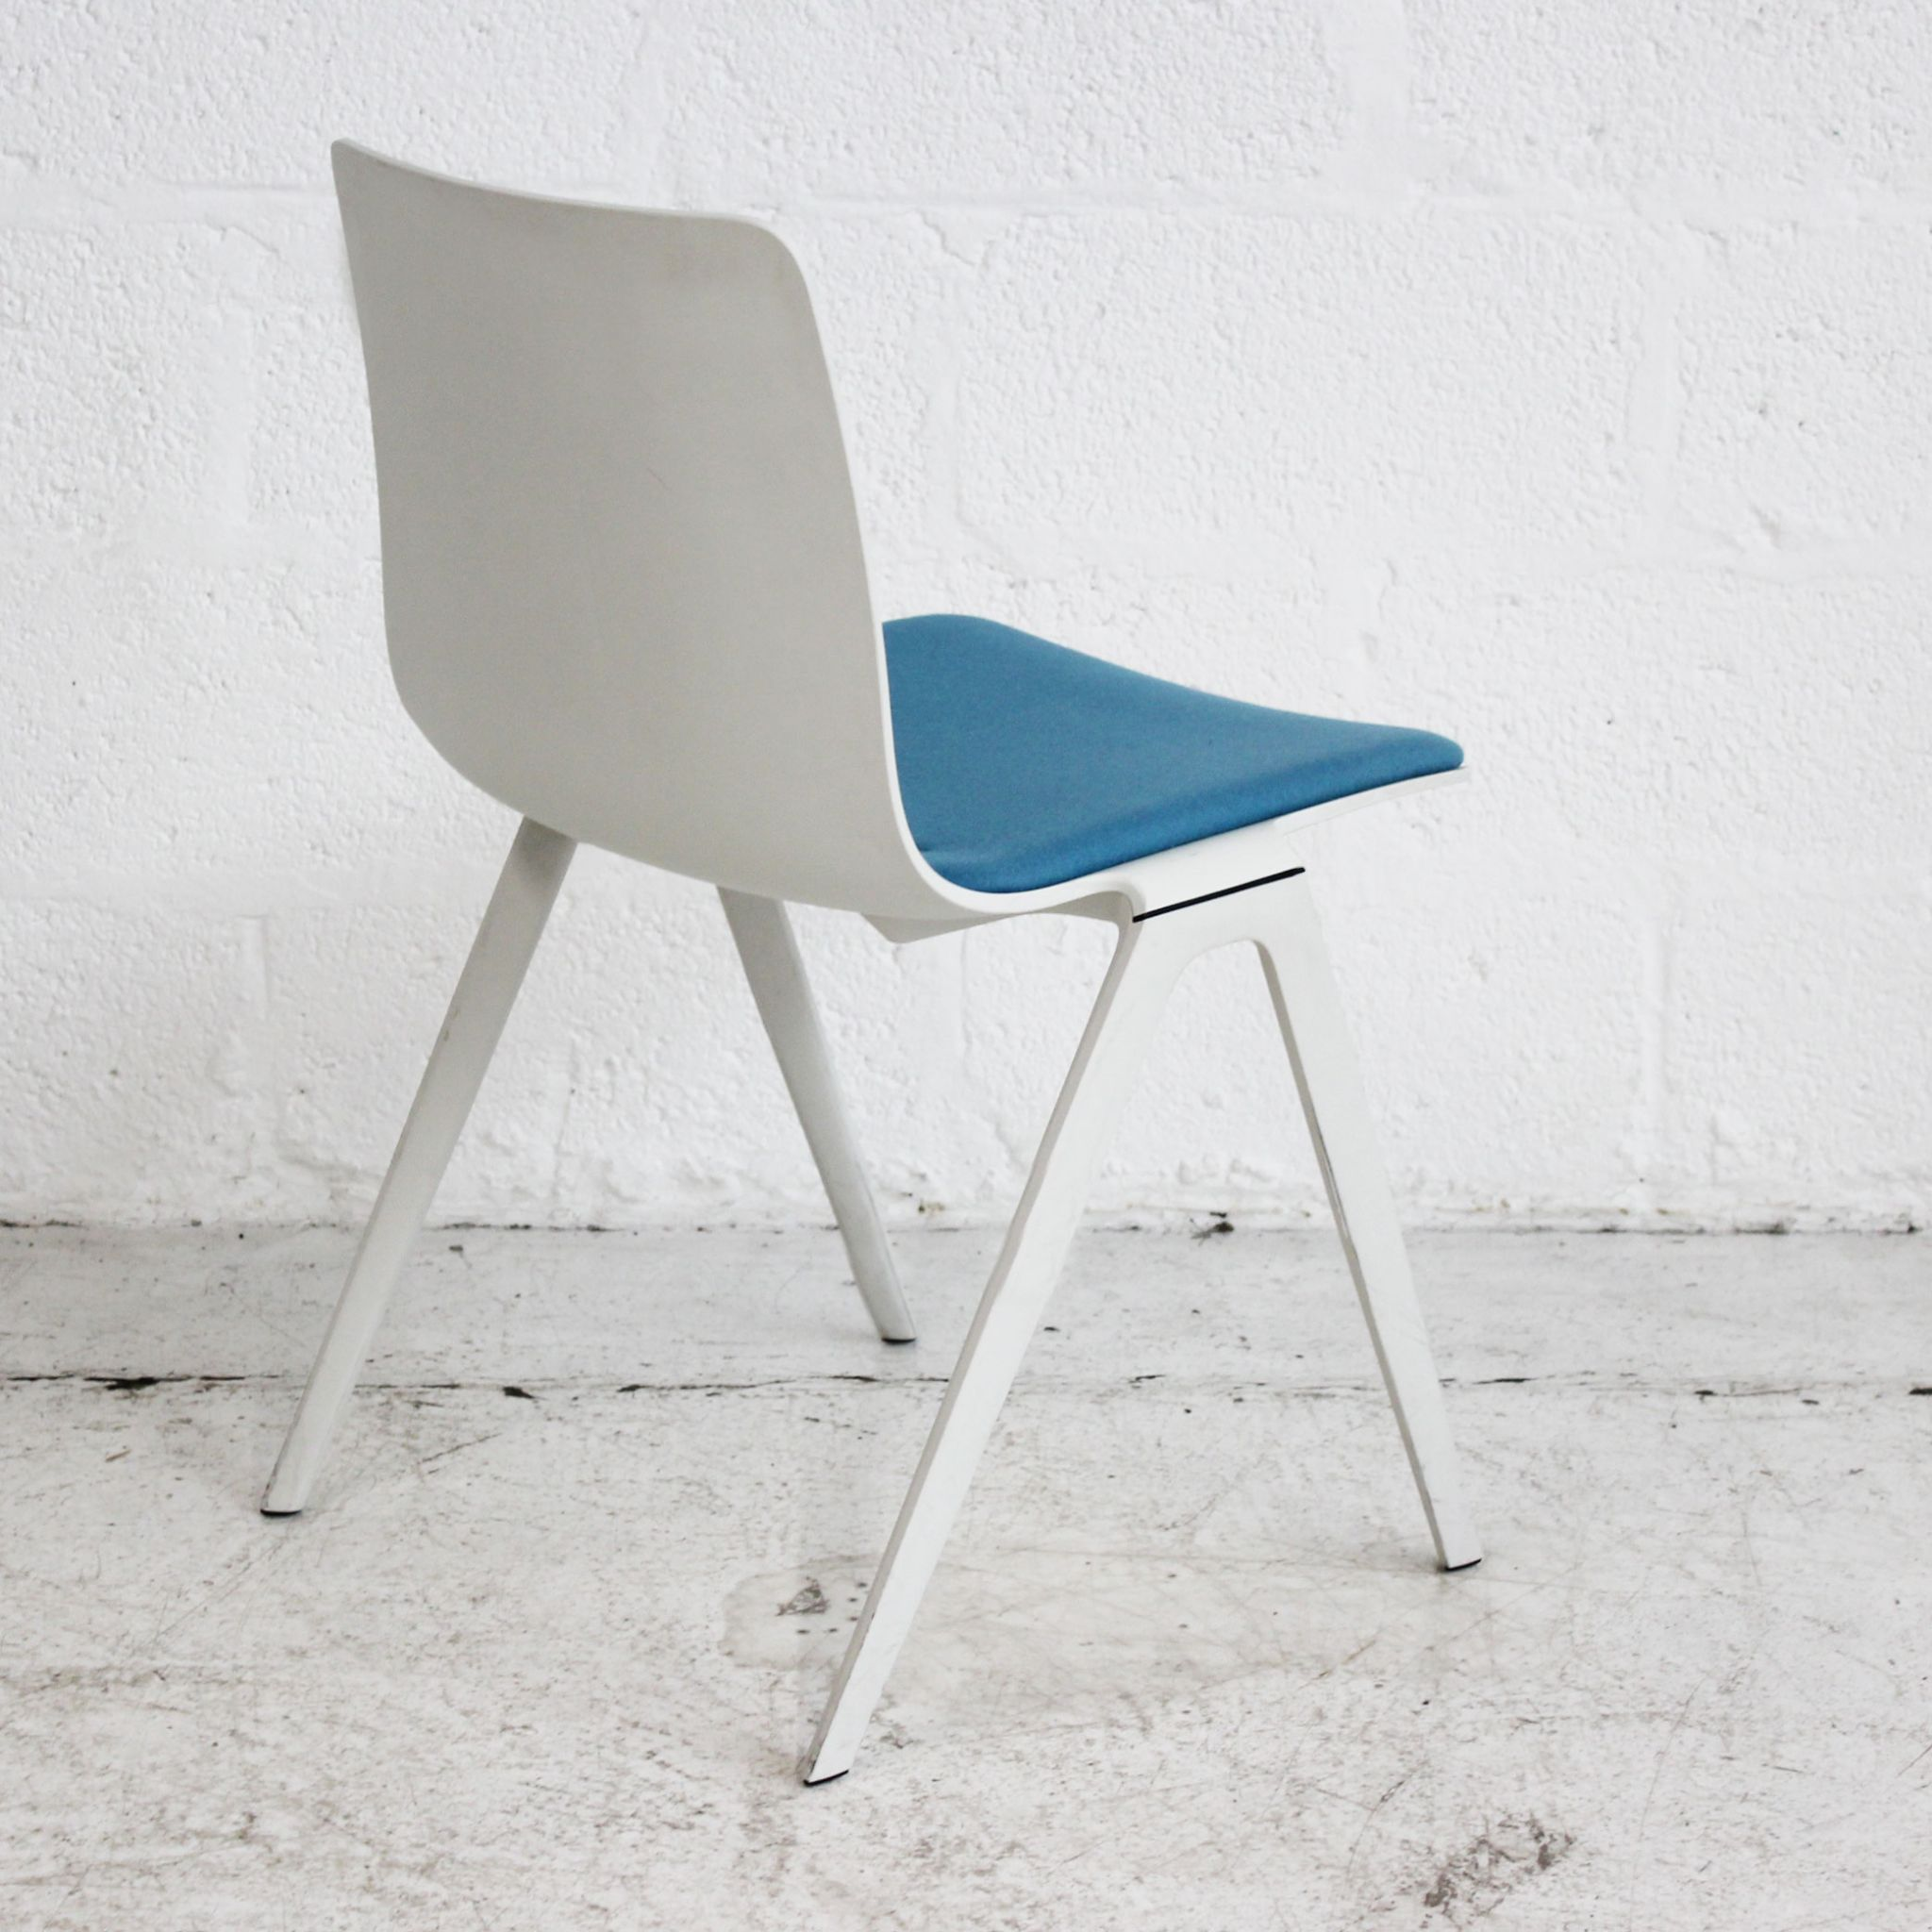 Brunner A Chair - White - Blue Seat